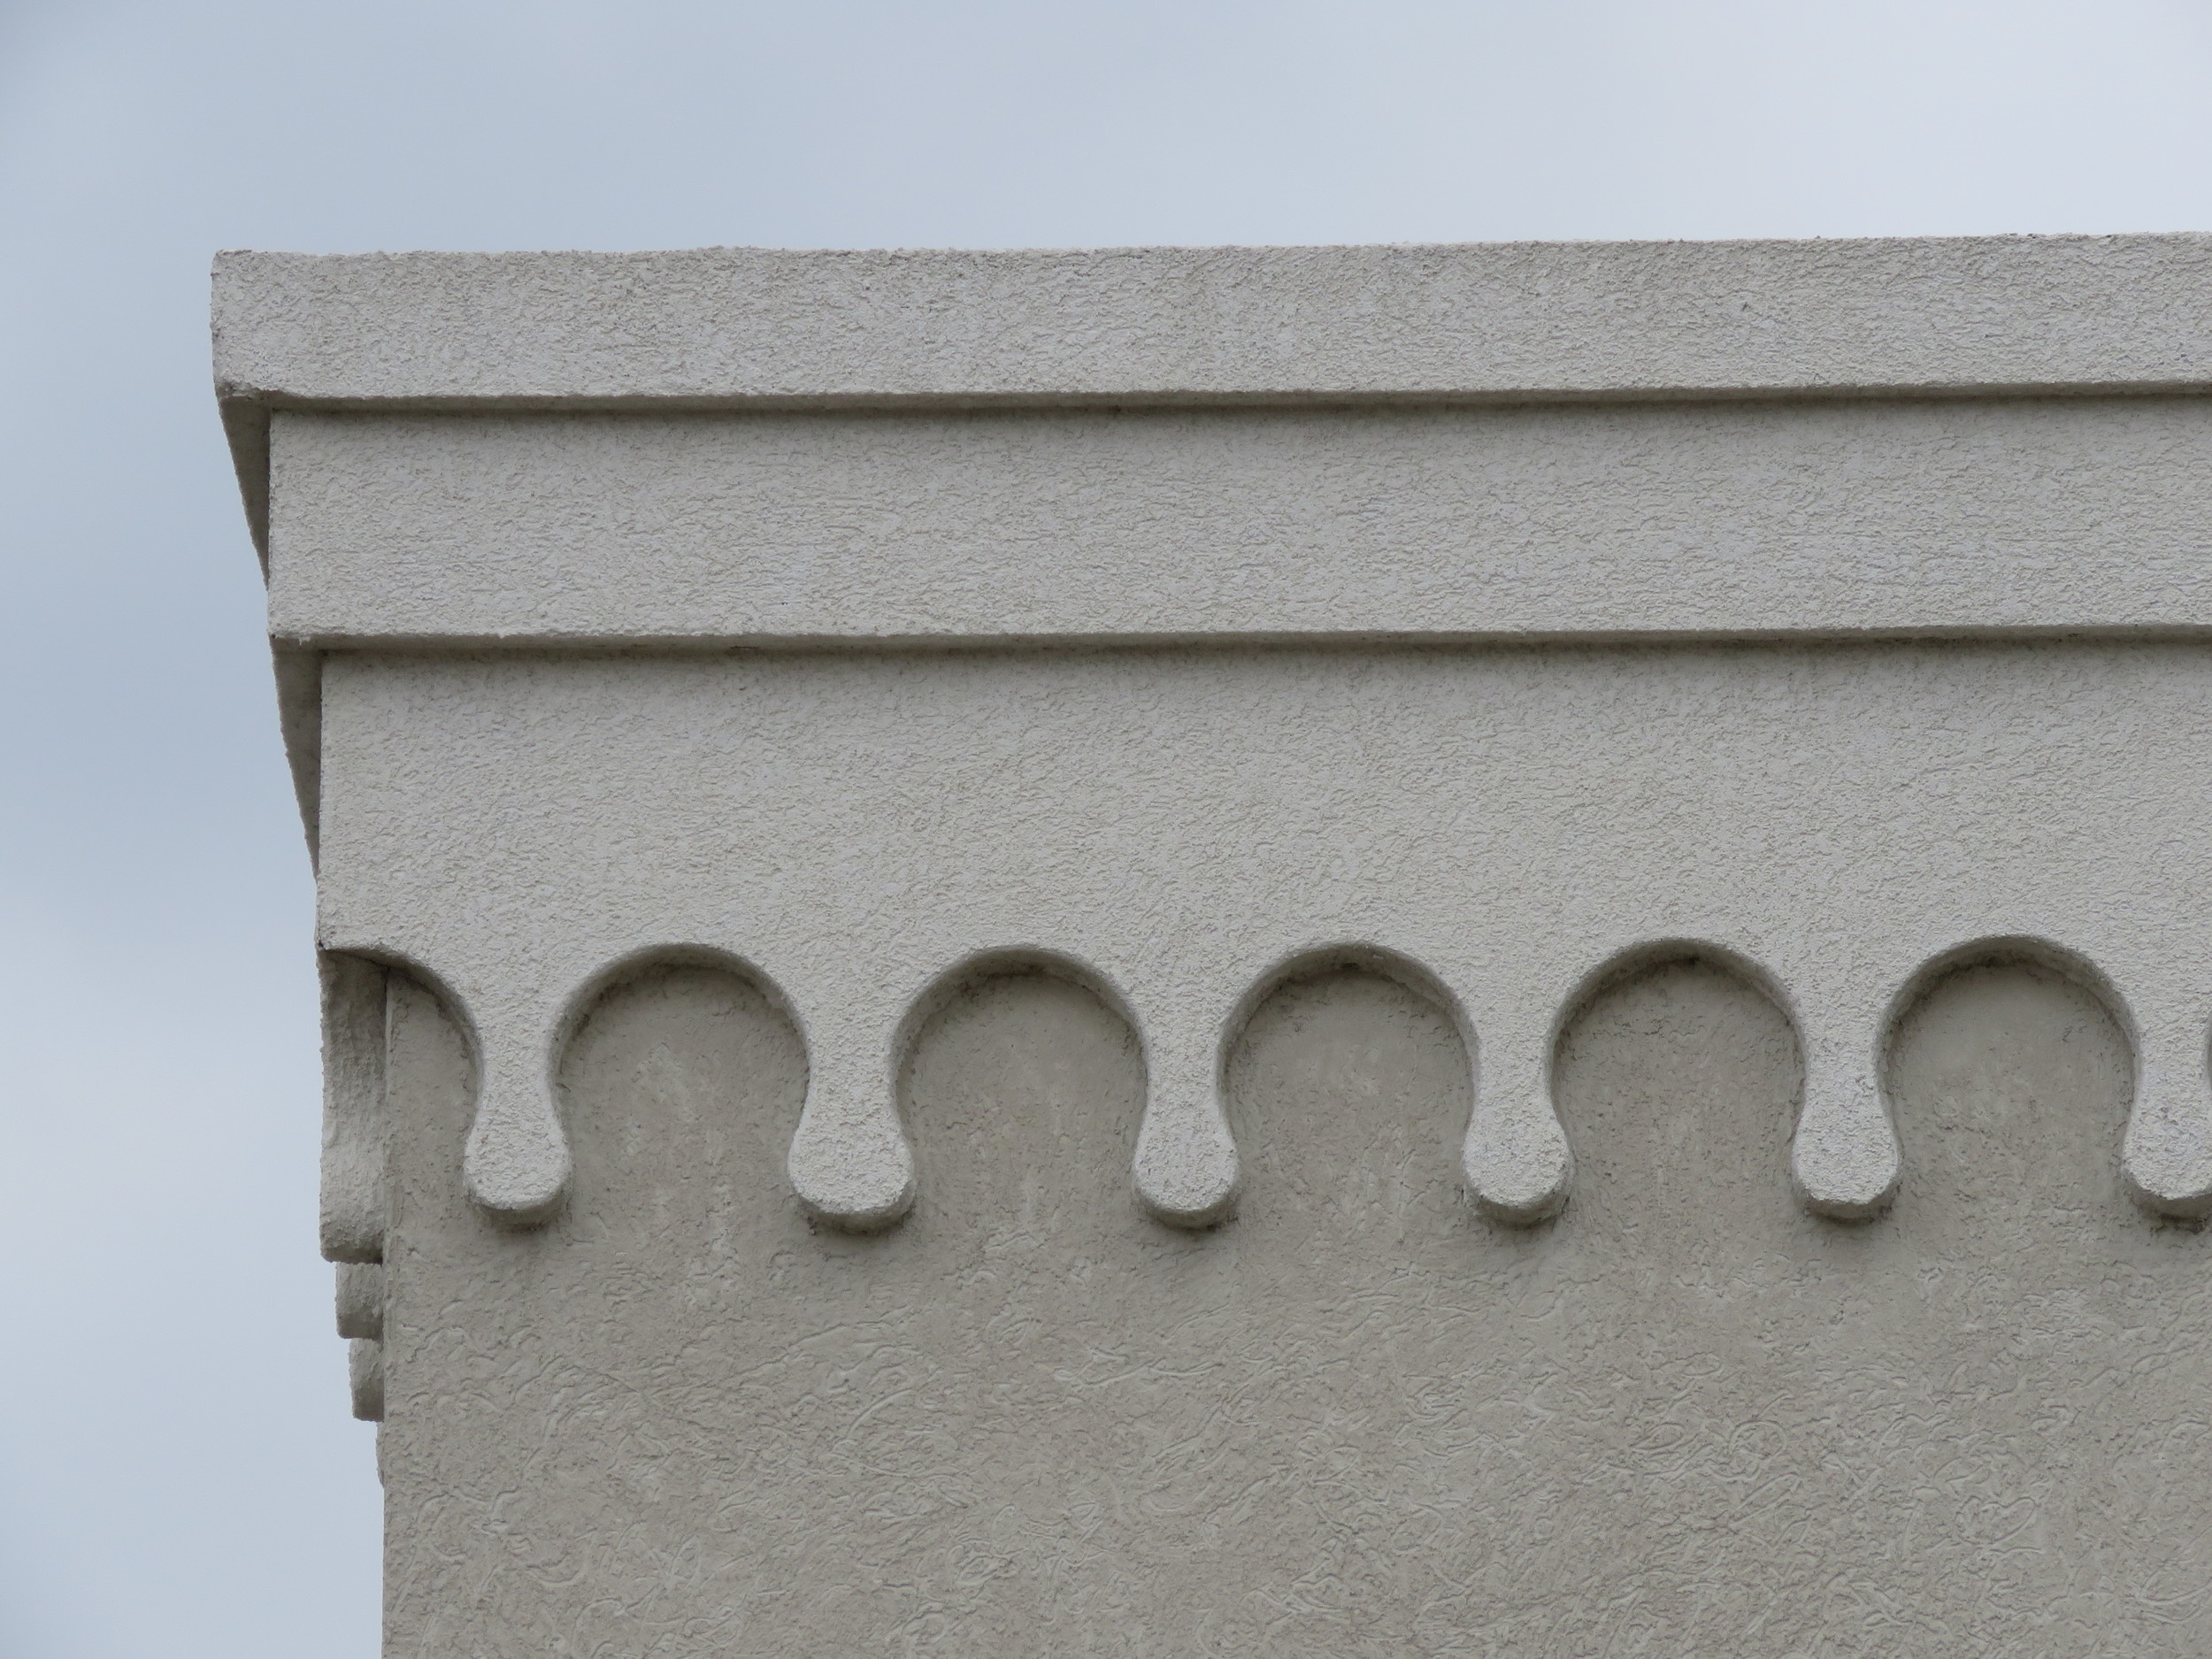 One reason EIFS is so popular is that it makes decorative details easy to create.